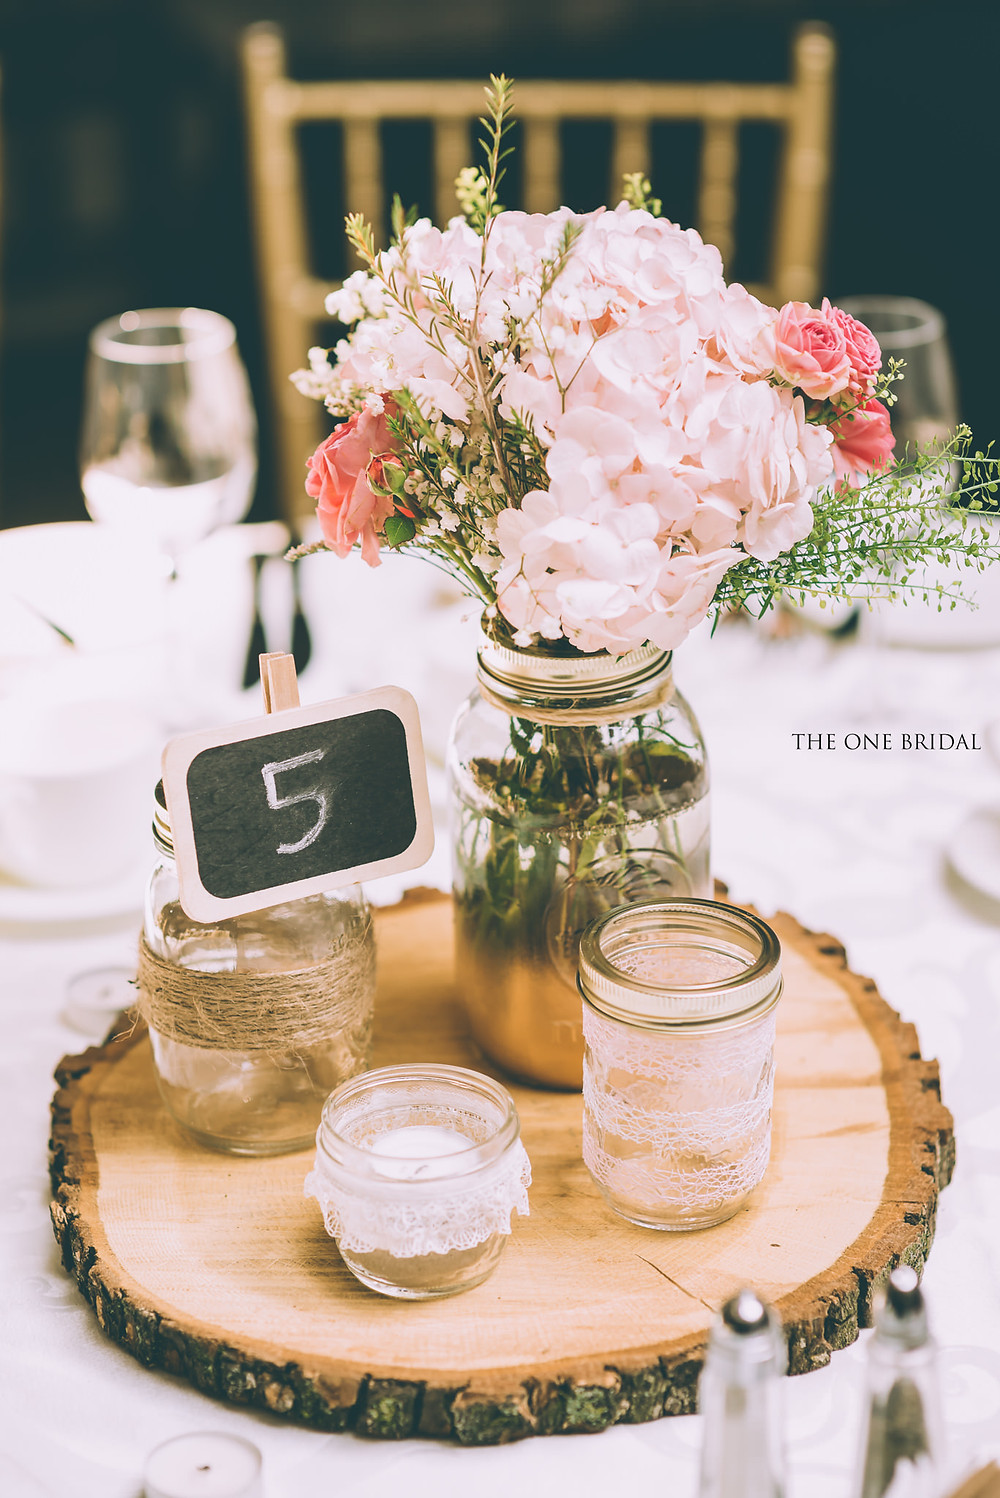 Wedding centrepiece and table decoration | THE ONE BRIDAL